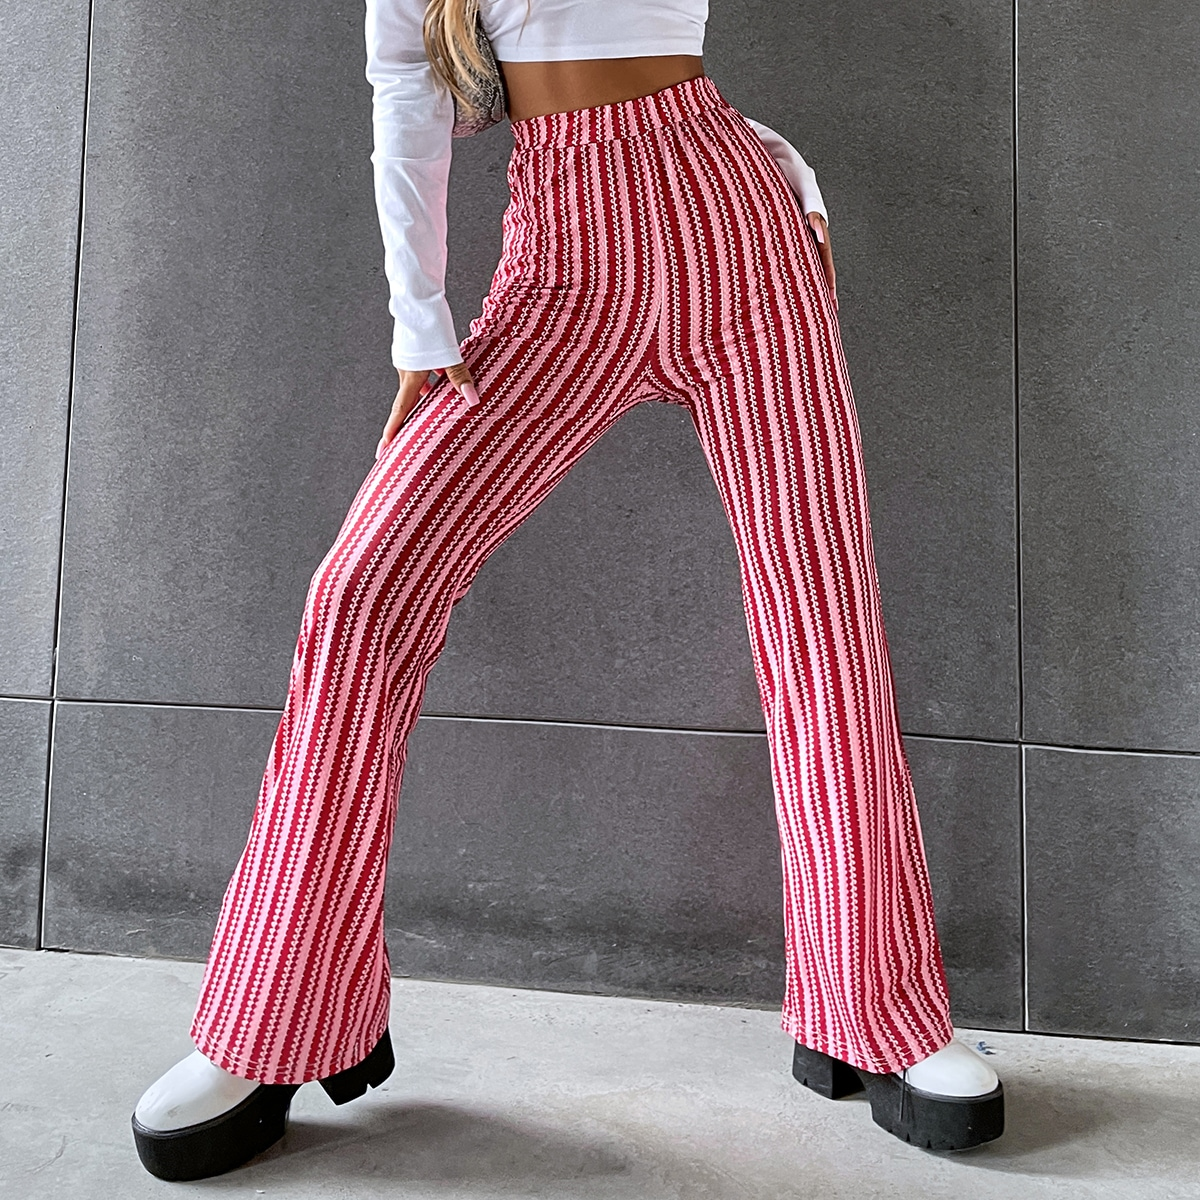 High Waist Striped Flare Leg Pants, SHEIN  - buy with discount